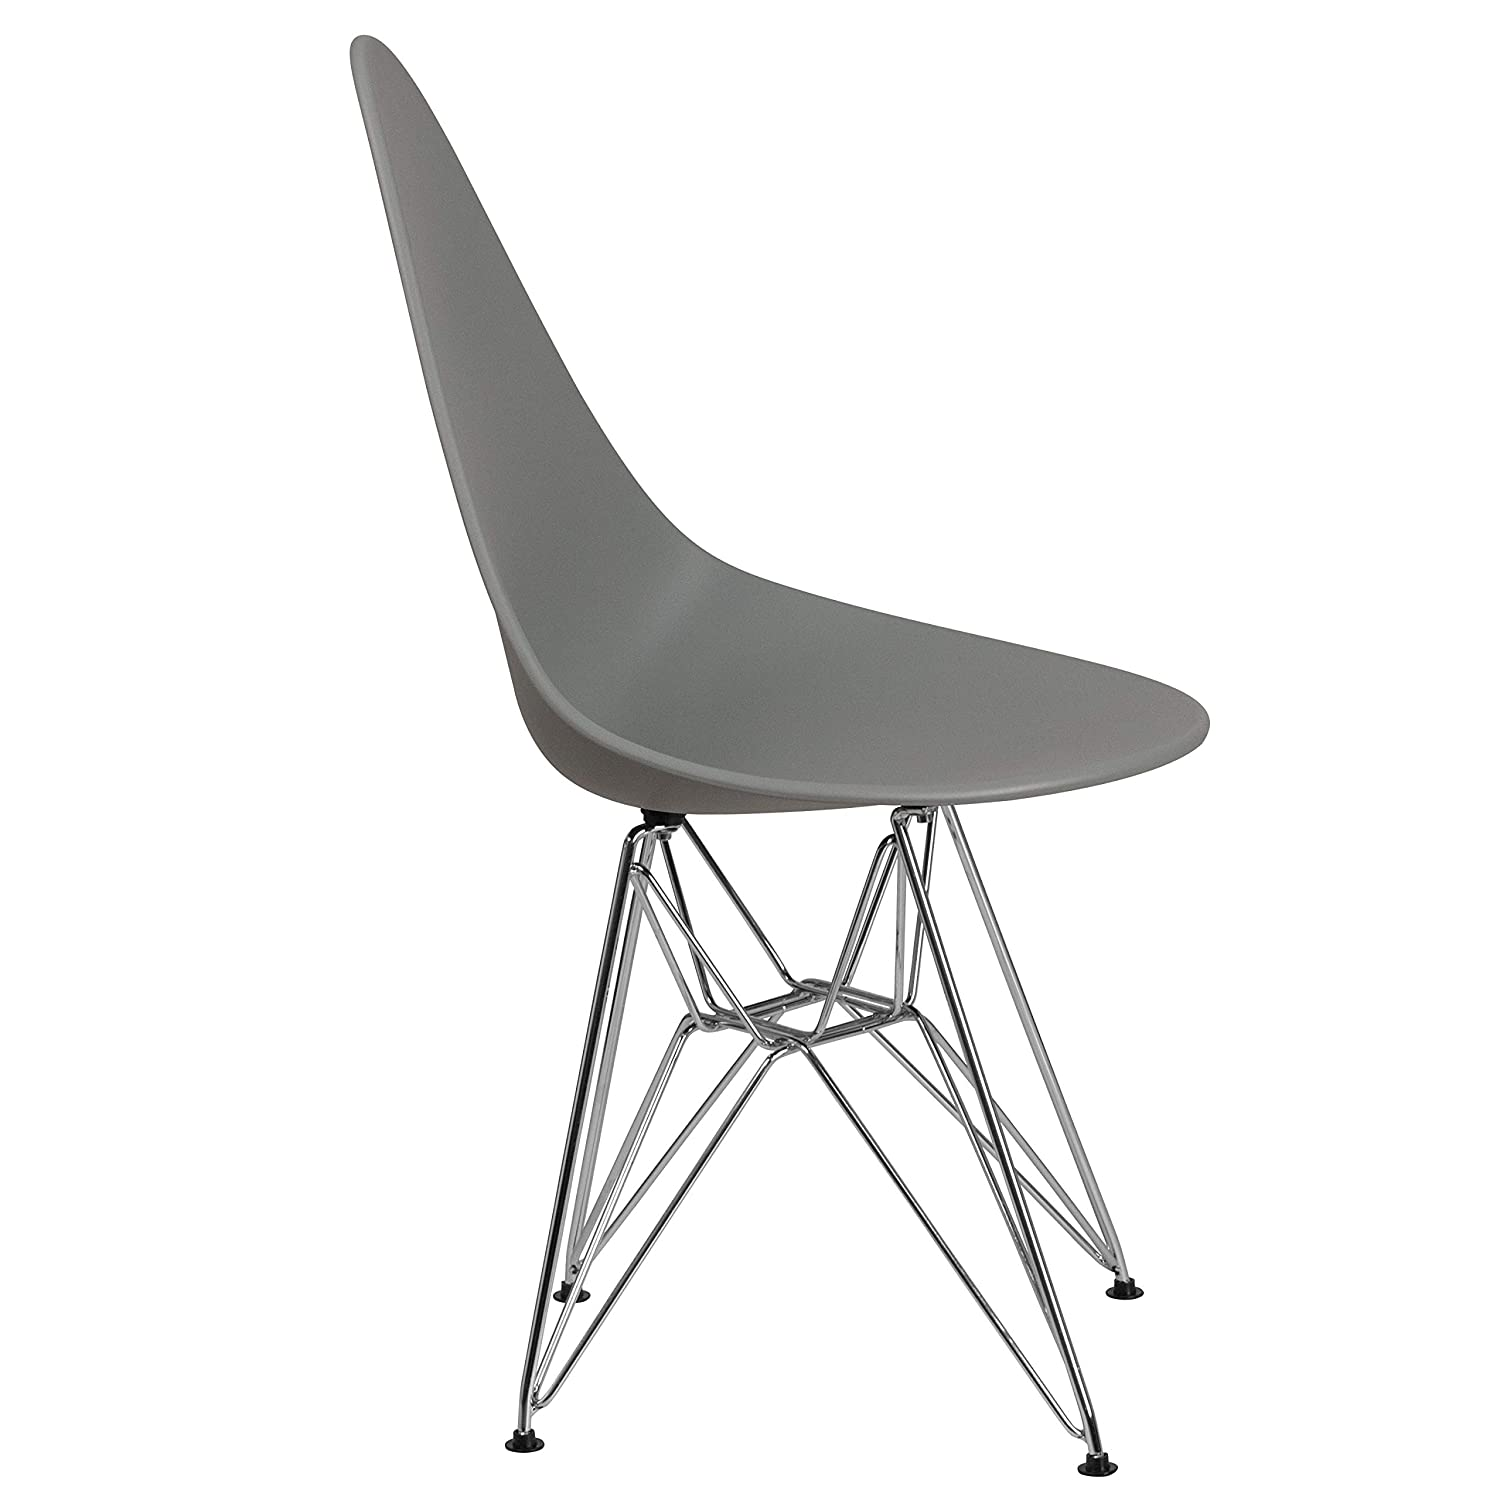 Allegra Series Teardrop Gray Plastic Chair with Chrome Base 2-FH-251-CPP-GY-GG Flash Furniture 2 Pk